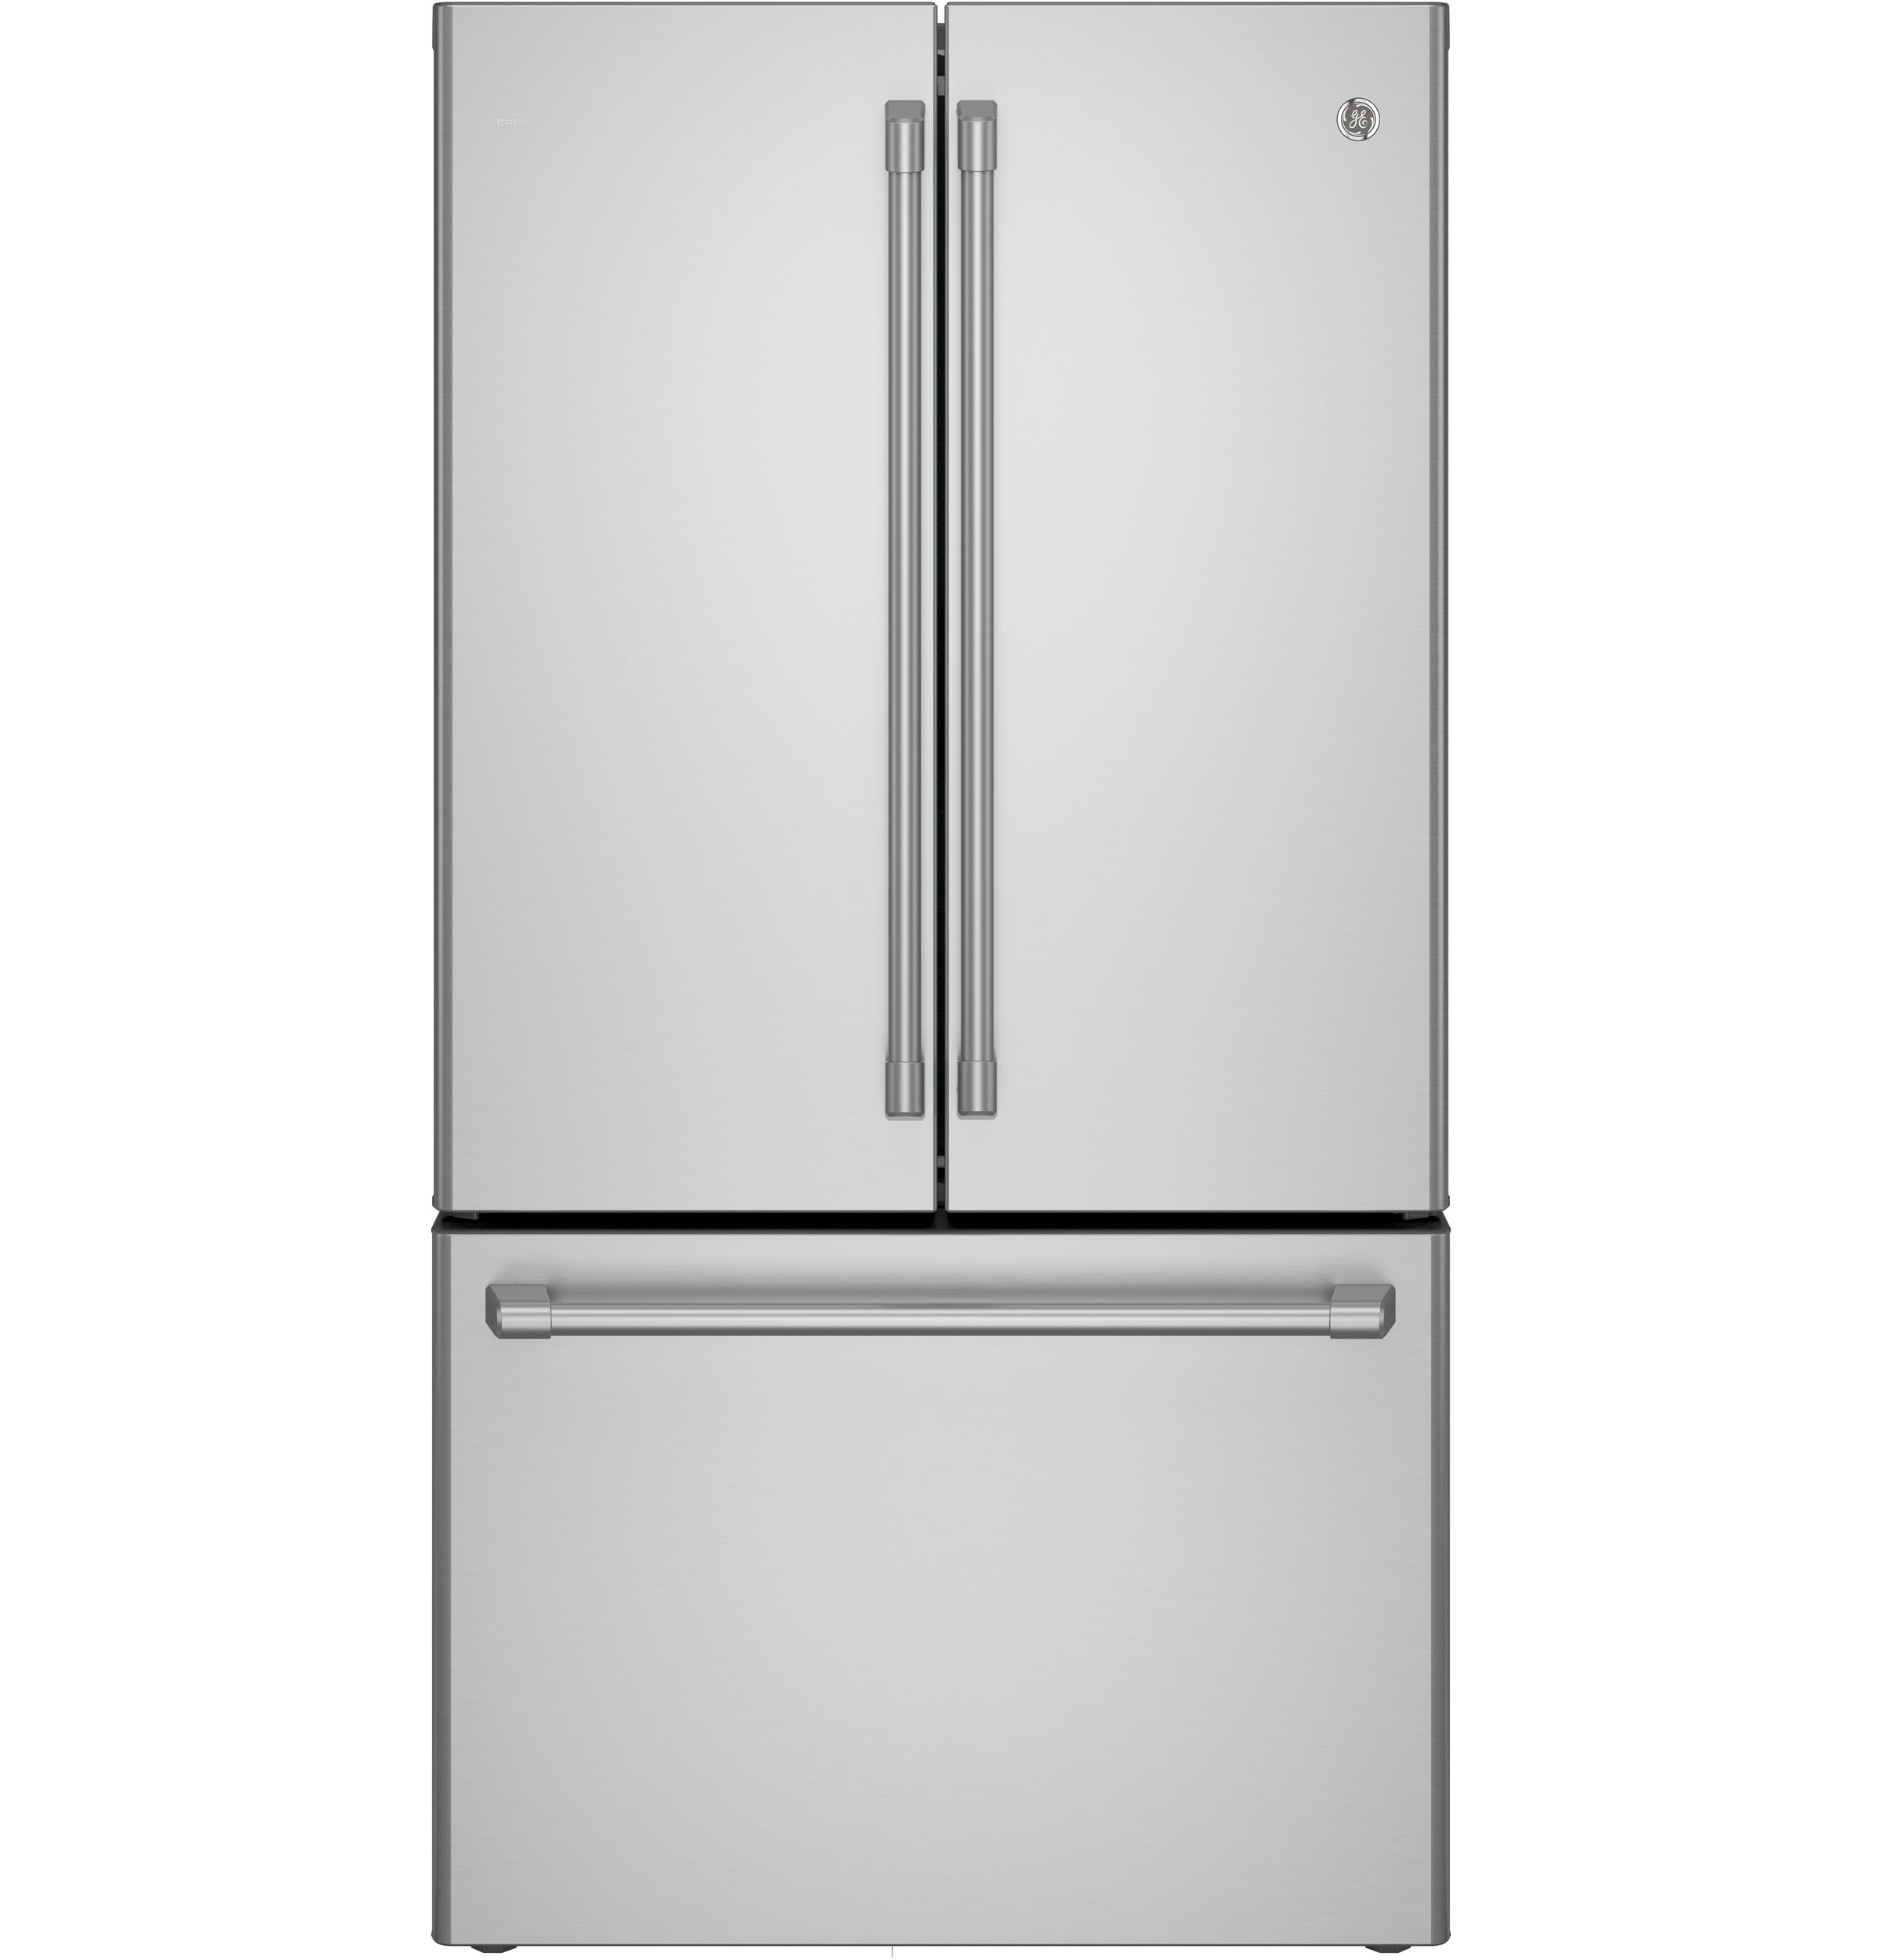 GE Cafe GE Café™ Series ENERGY STAR® 23.1 Cu. Ft. Counter-Depth French-Door Refrigerator